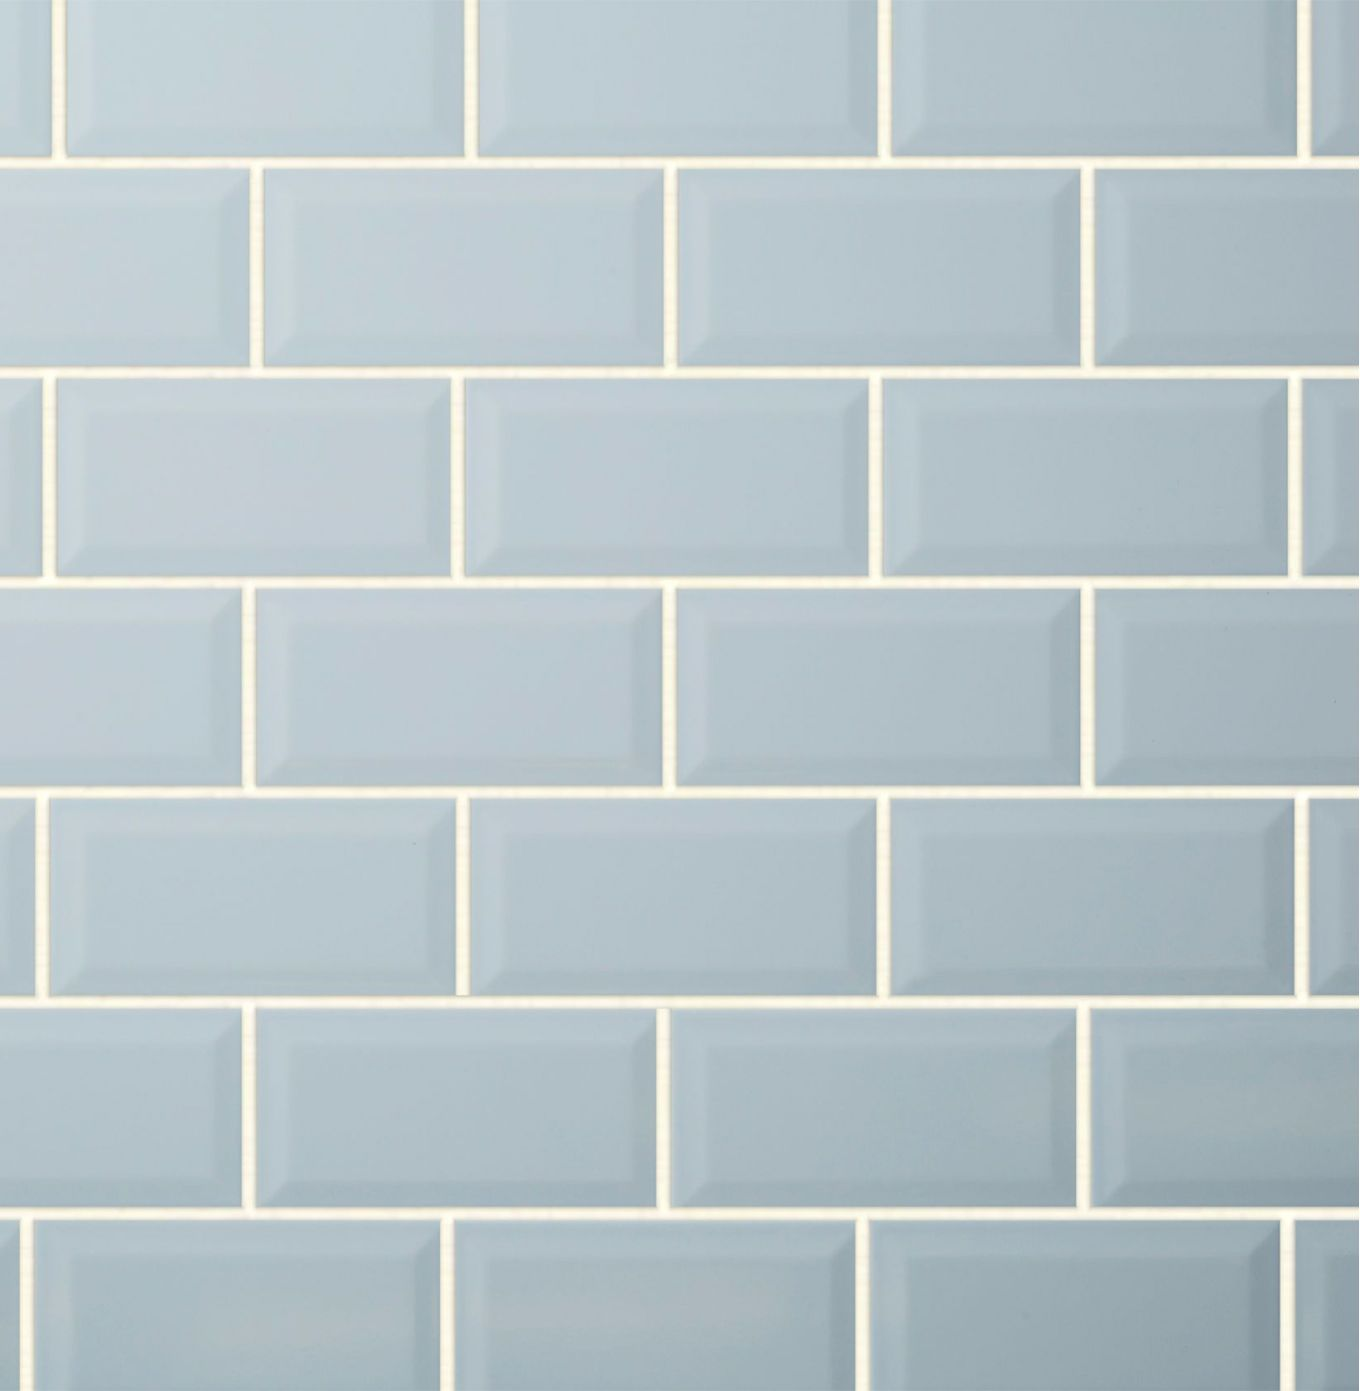 Pastel Tiles Are So Pretty And Perfect For Adding Unicorn Style To Your Kitchen Blue Tile Wall Ceramic Wall Tiles Wall Tiles